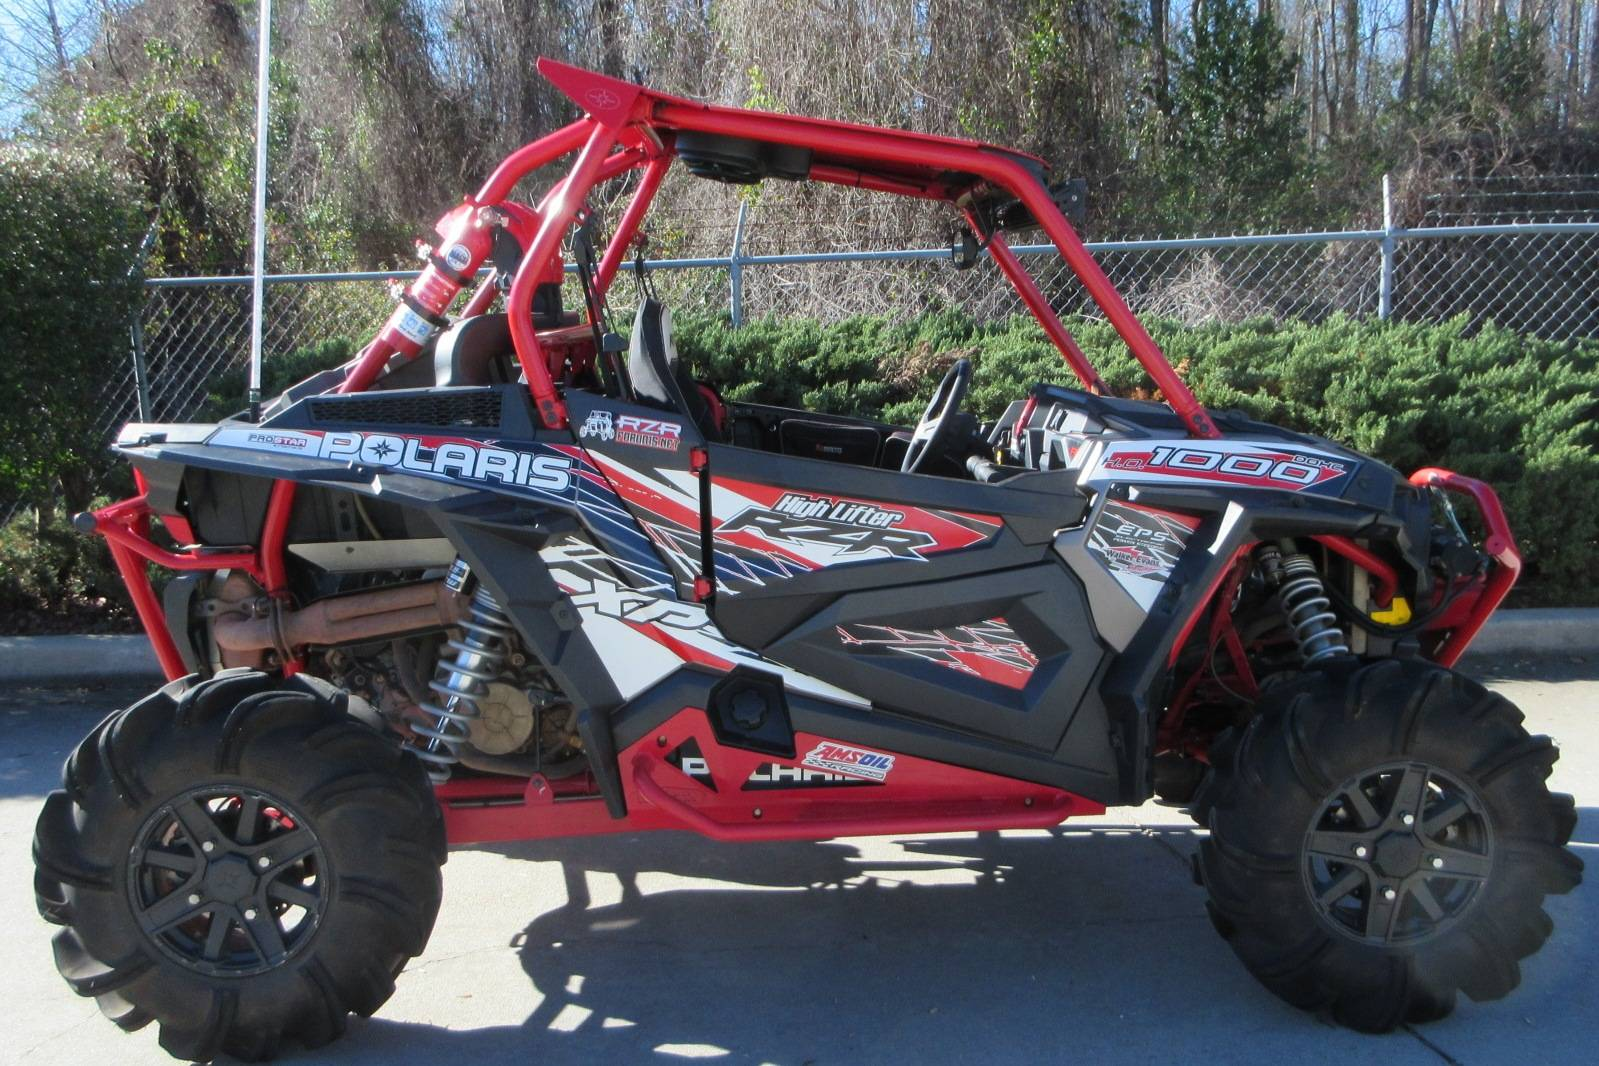 2016 Polaris Rzr Xp 1000 Eps High Lifter Edition In Sumter South Carolina